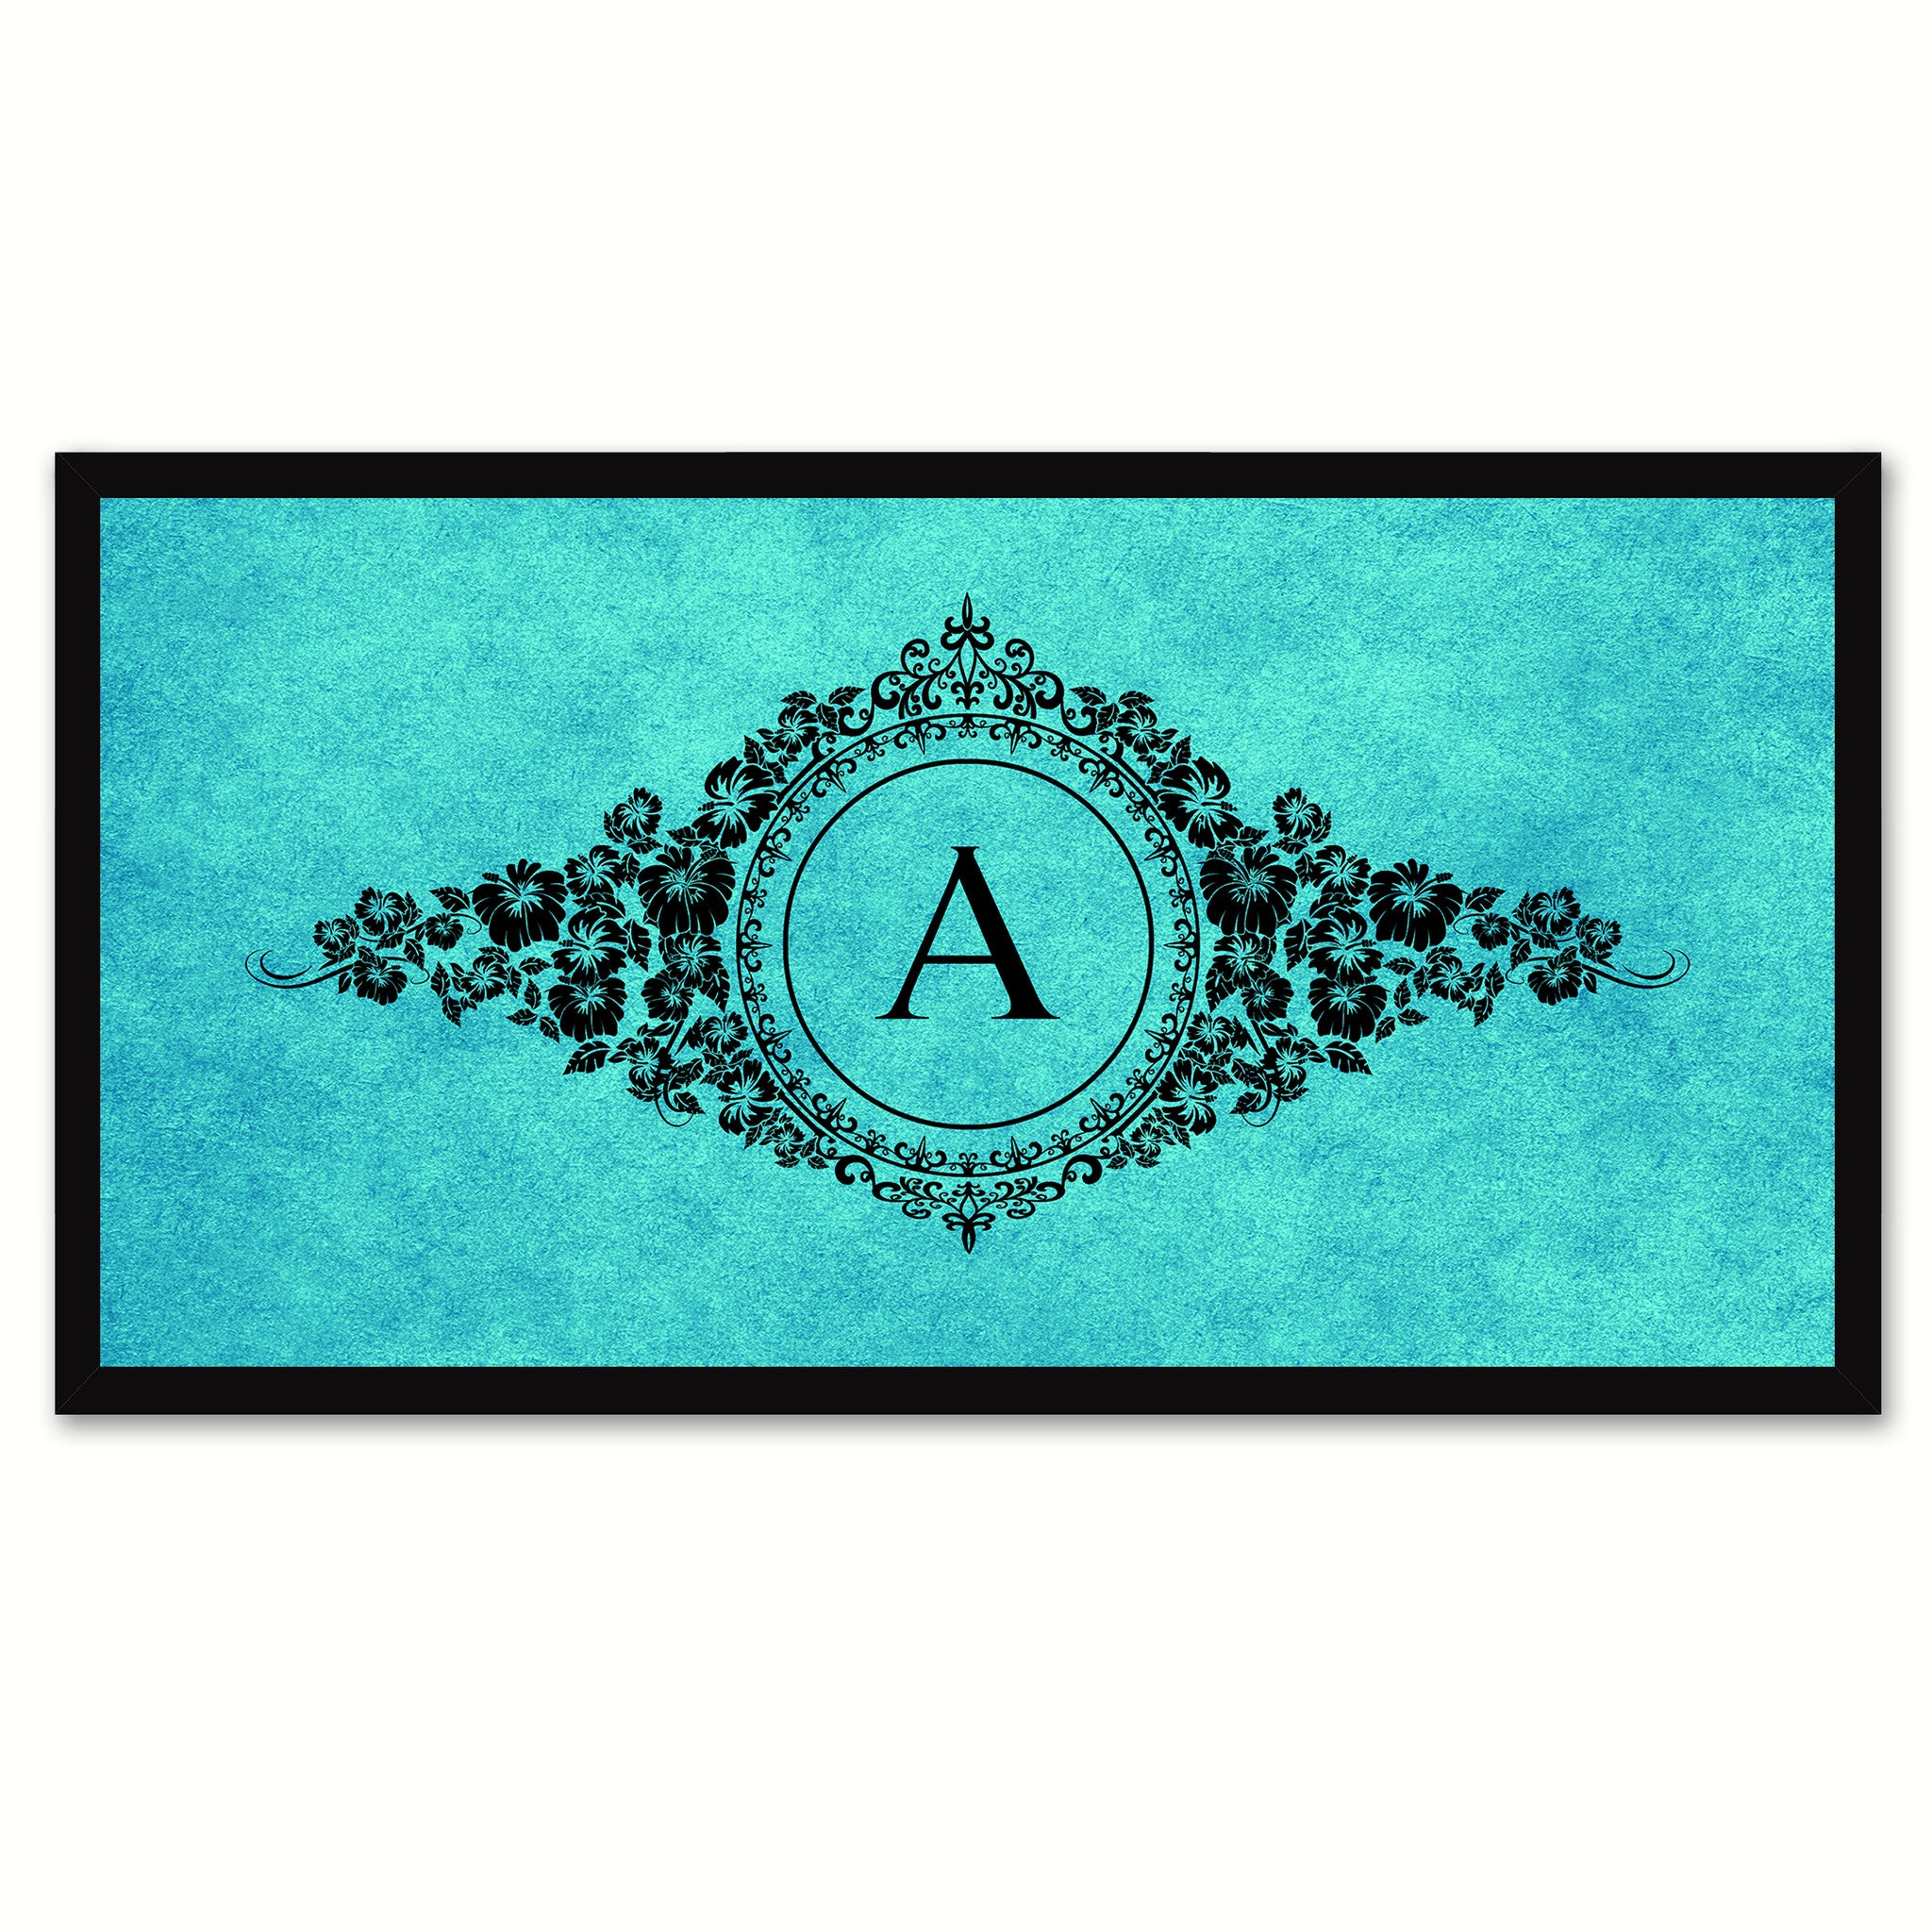 Alphabet Letter A Auqa Canvas Print, Black Custom Frame